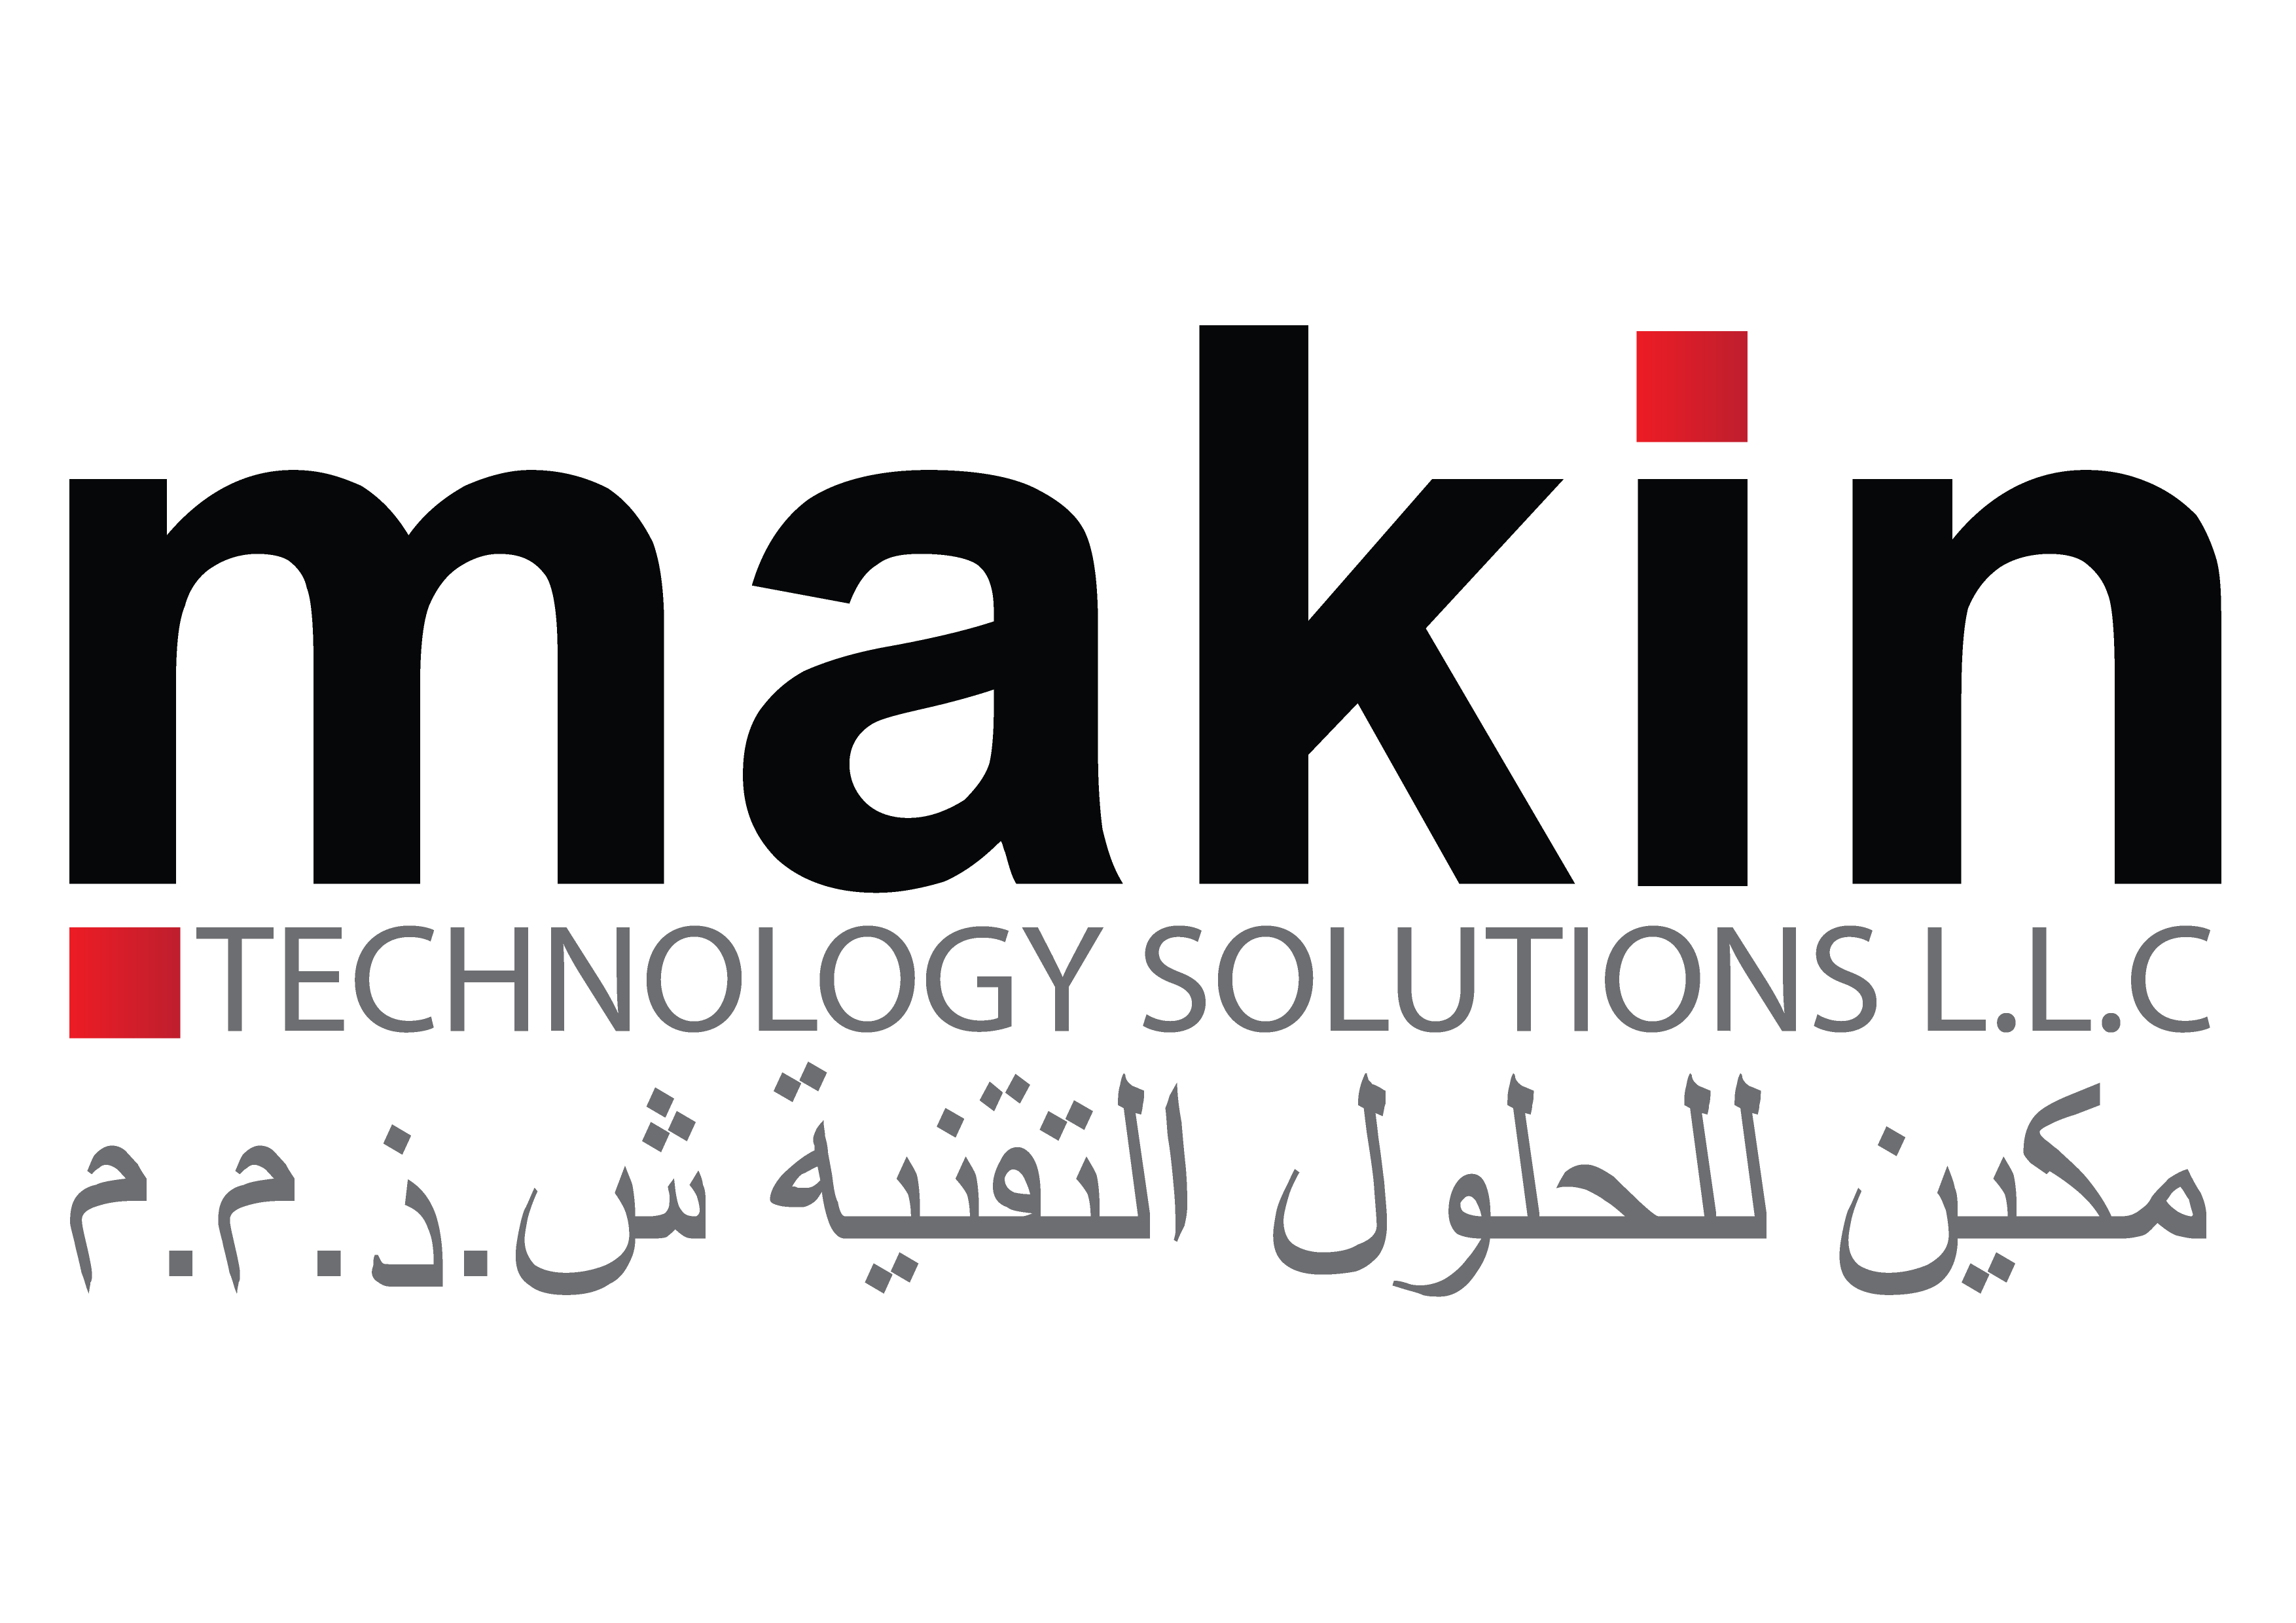 Makin Technology Solutions LLC